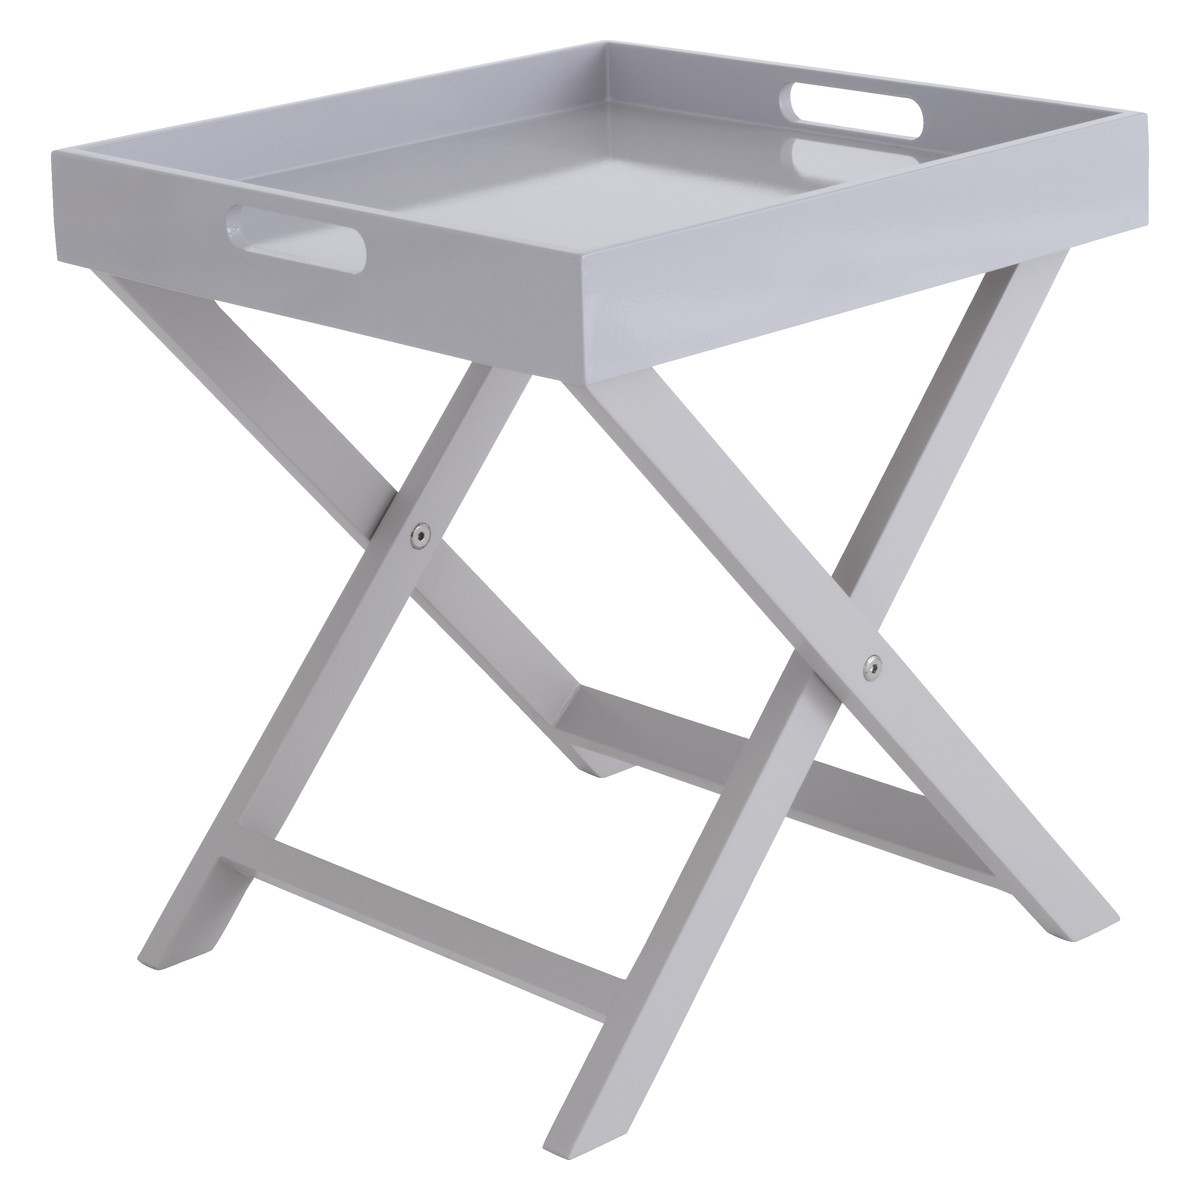 oken grey folding side table with removable tray top now end sides care instructions seaside decor white couch living room chest furniture dresser scarves tables under ebony wood